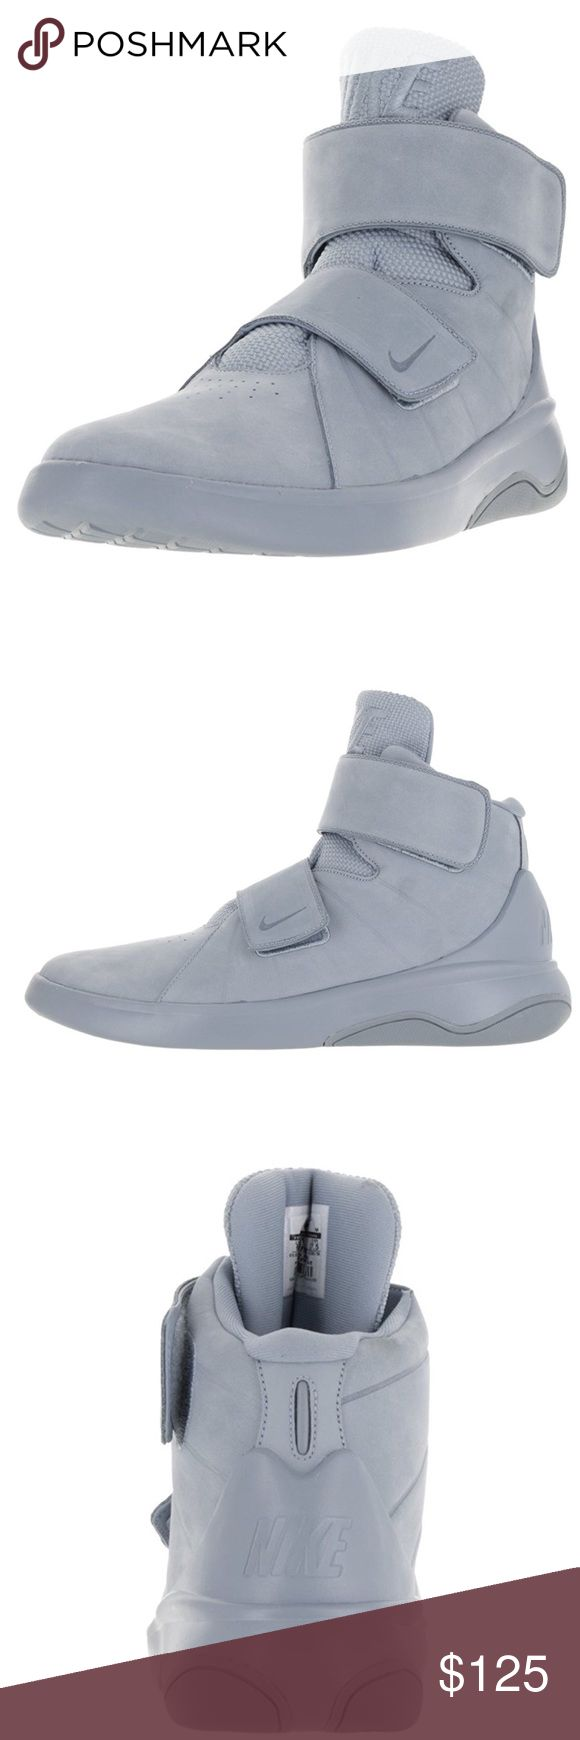 Nike Marxman Basketball Shoes Leather-And-Synthetic Rubber sole Luxurious leather upper offers a premium look with durable support One-piece midsole is lightweight and flexible Strap closures provides a locked-down fit Nike Shoes Athletic Shoes